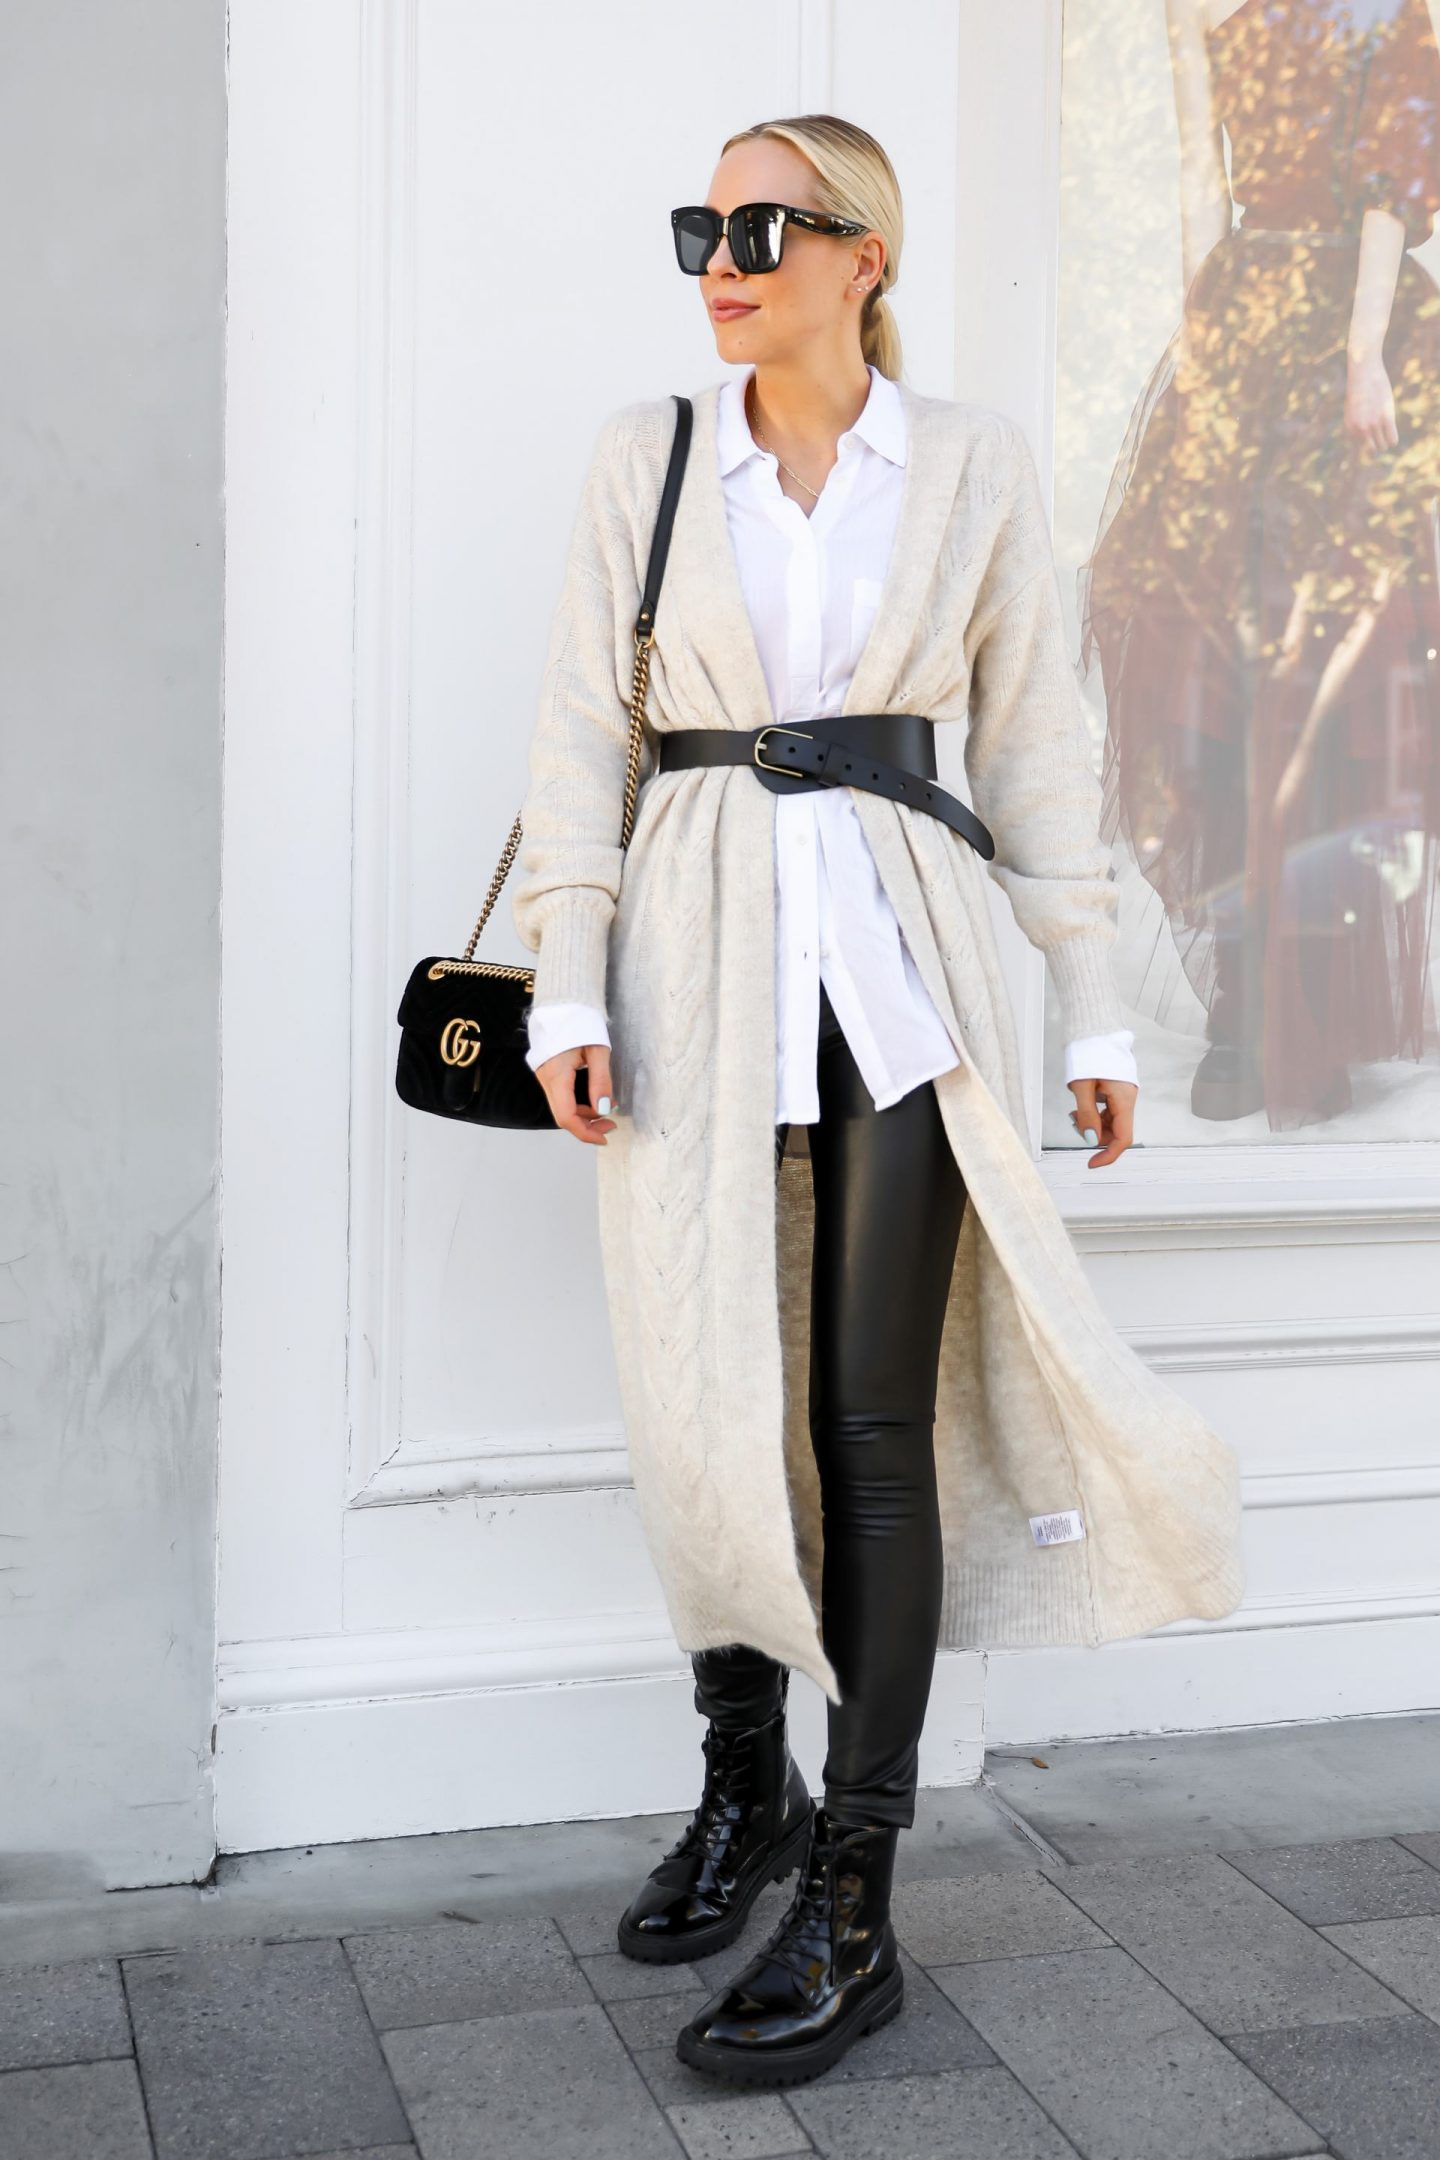 Objectrare and other best black Friday sales round up for 2020, featured by fashion blogger Lombard & Fifth. Featuring Nordstrom, H&M, Shopbop, Mango, Lauren Haskel and Caitlin Wilson.